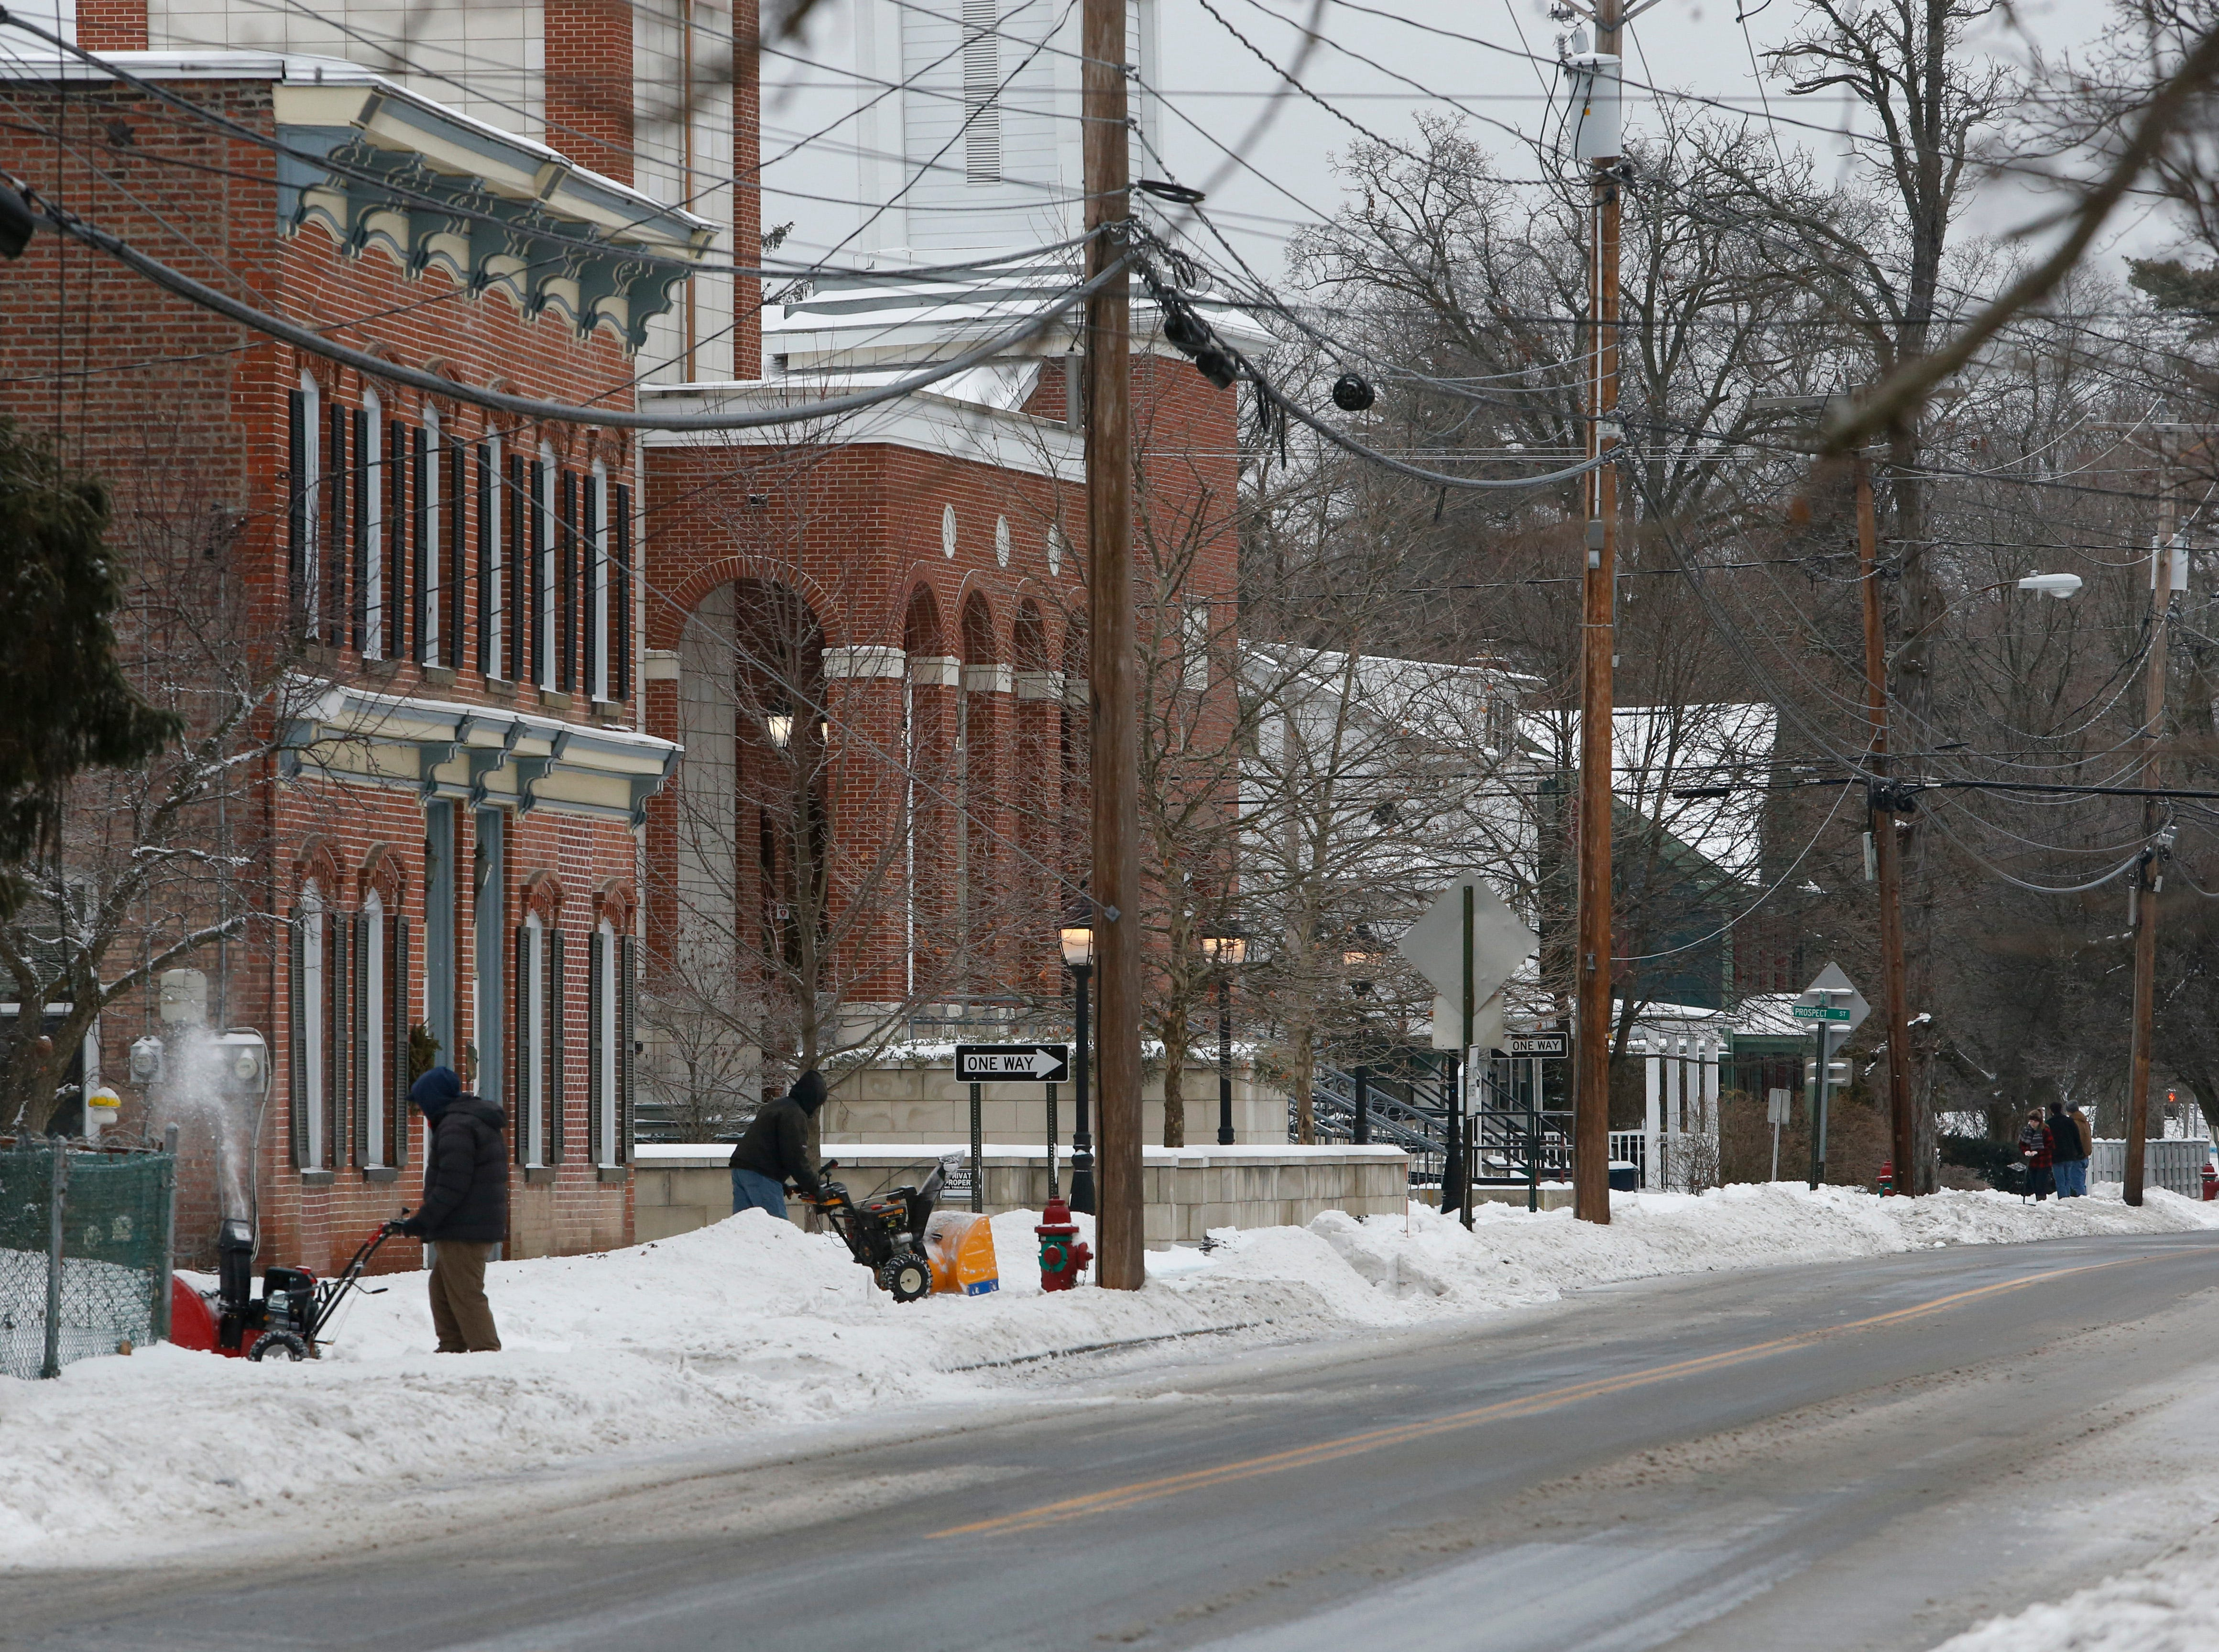 Residents clear sidewalks and driveways along South Avenue in the Village of Wappingers Falls on January 20, 2019.